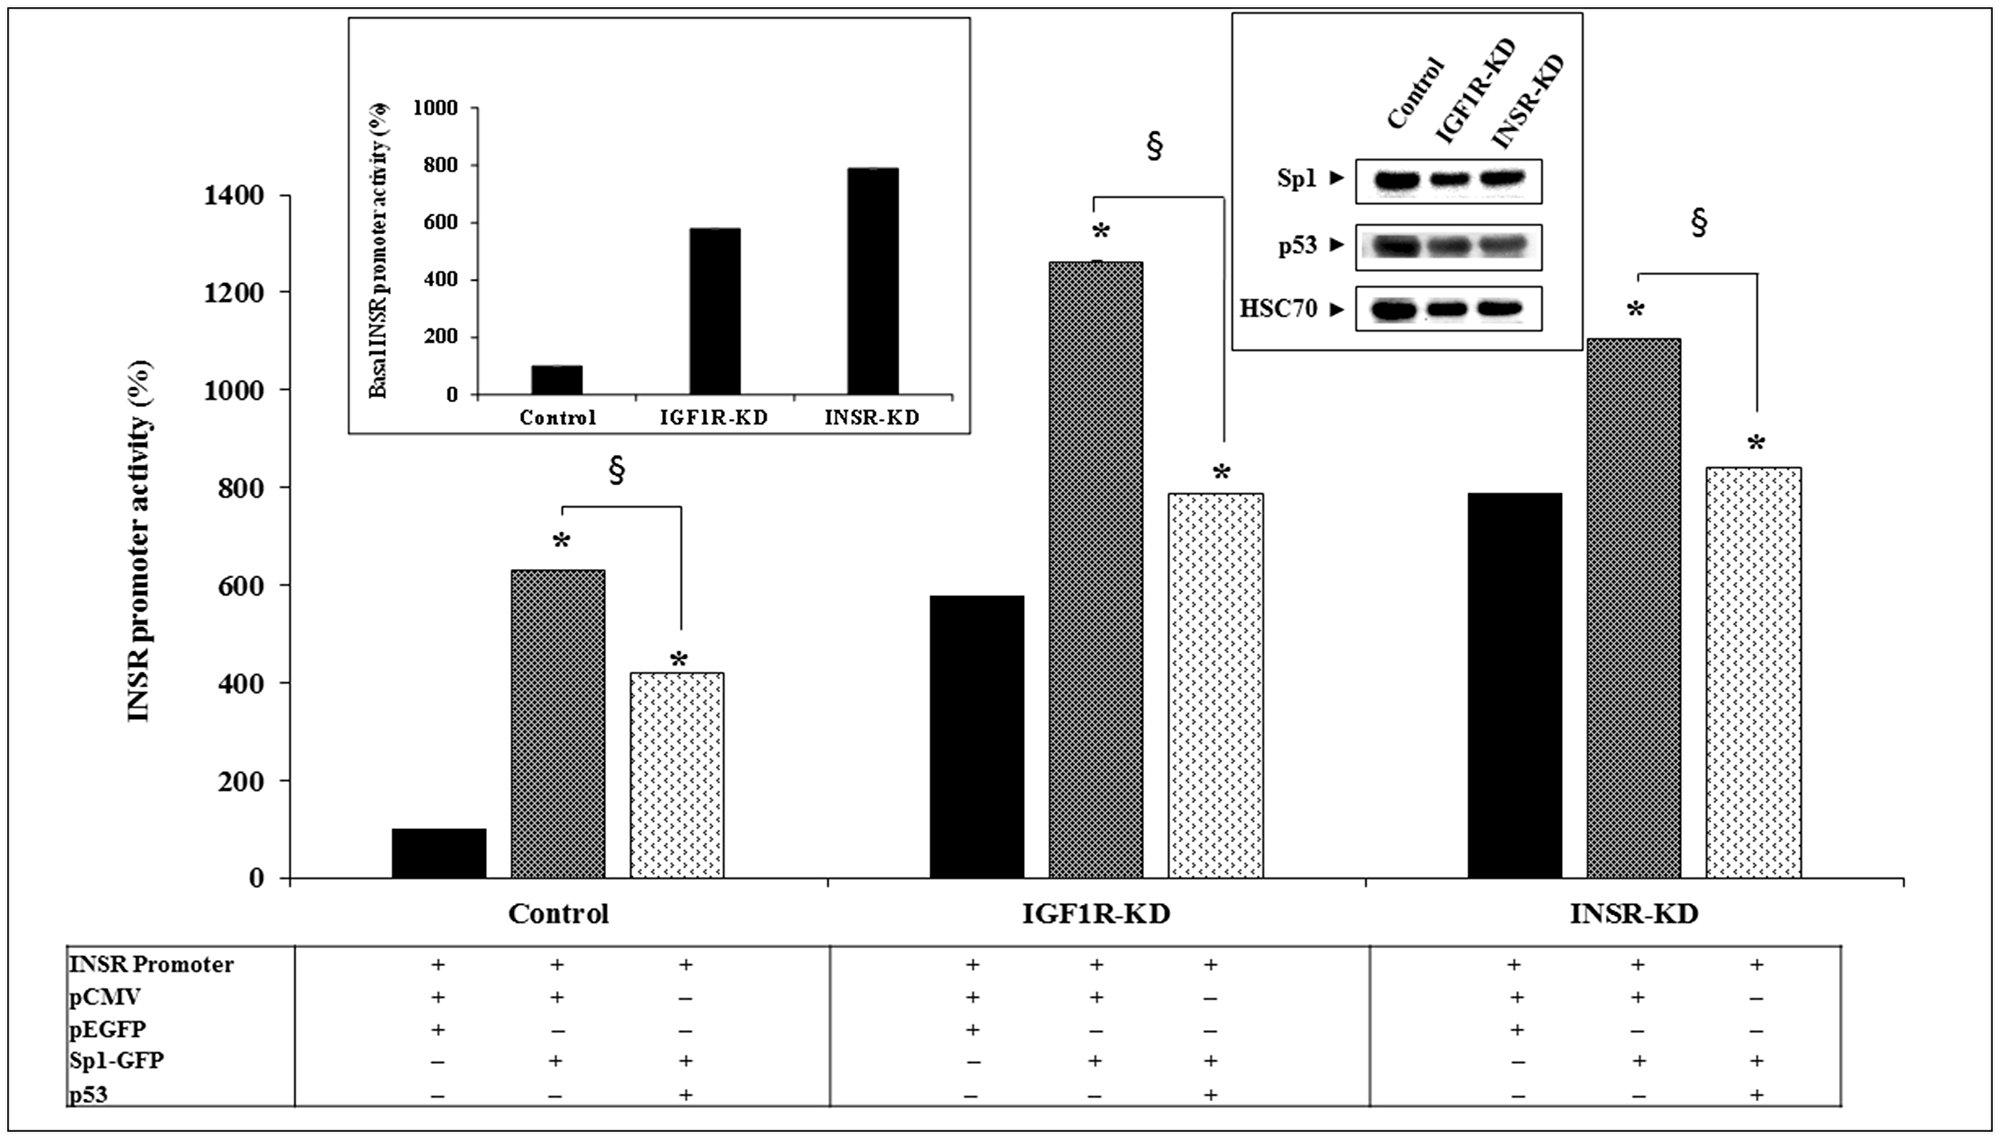 Effect of Sp1 on INSR promoter activity.